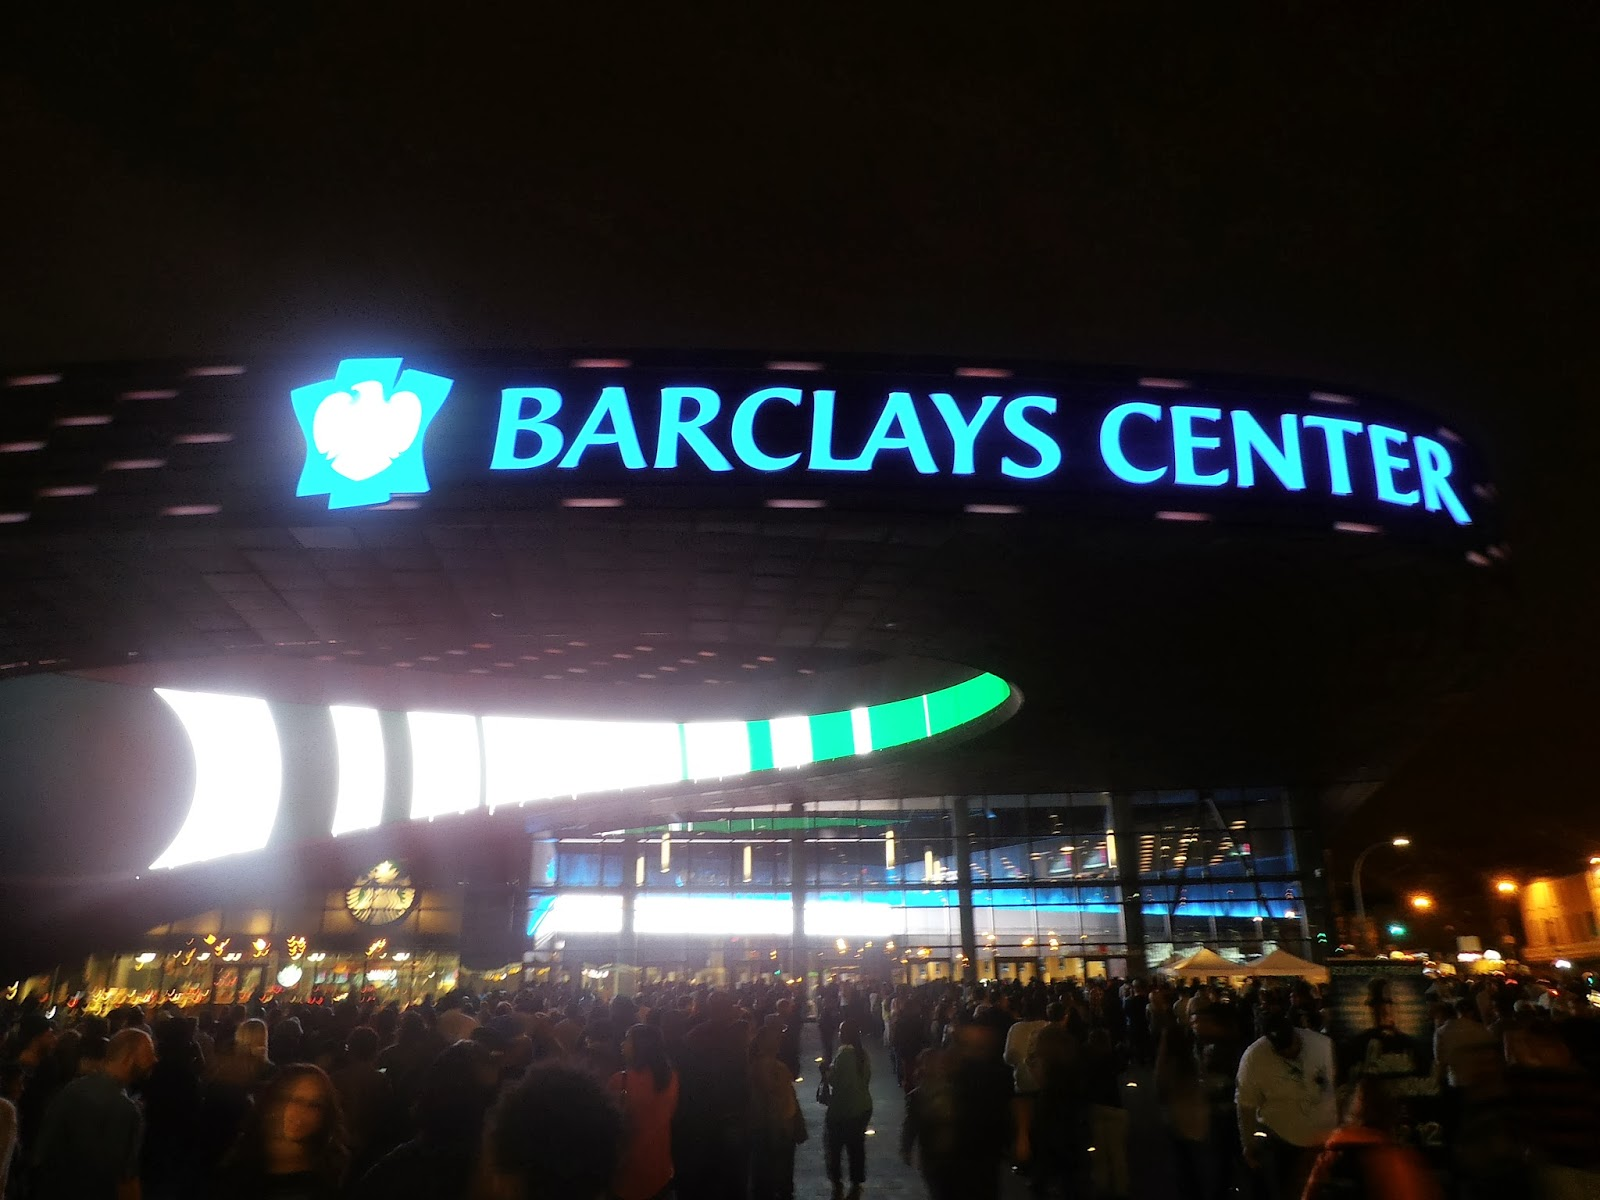 Barlcays Center Luxury Suites For Sale, Brooklyn Nets and Concert Tickets